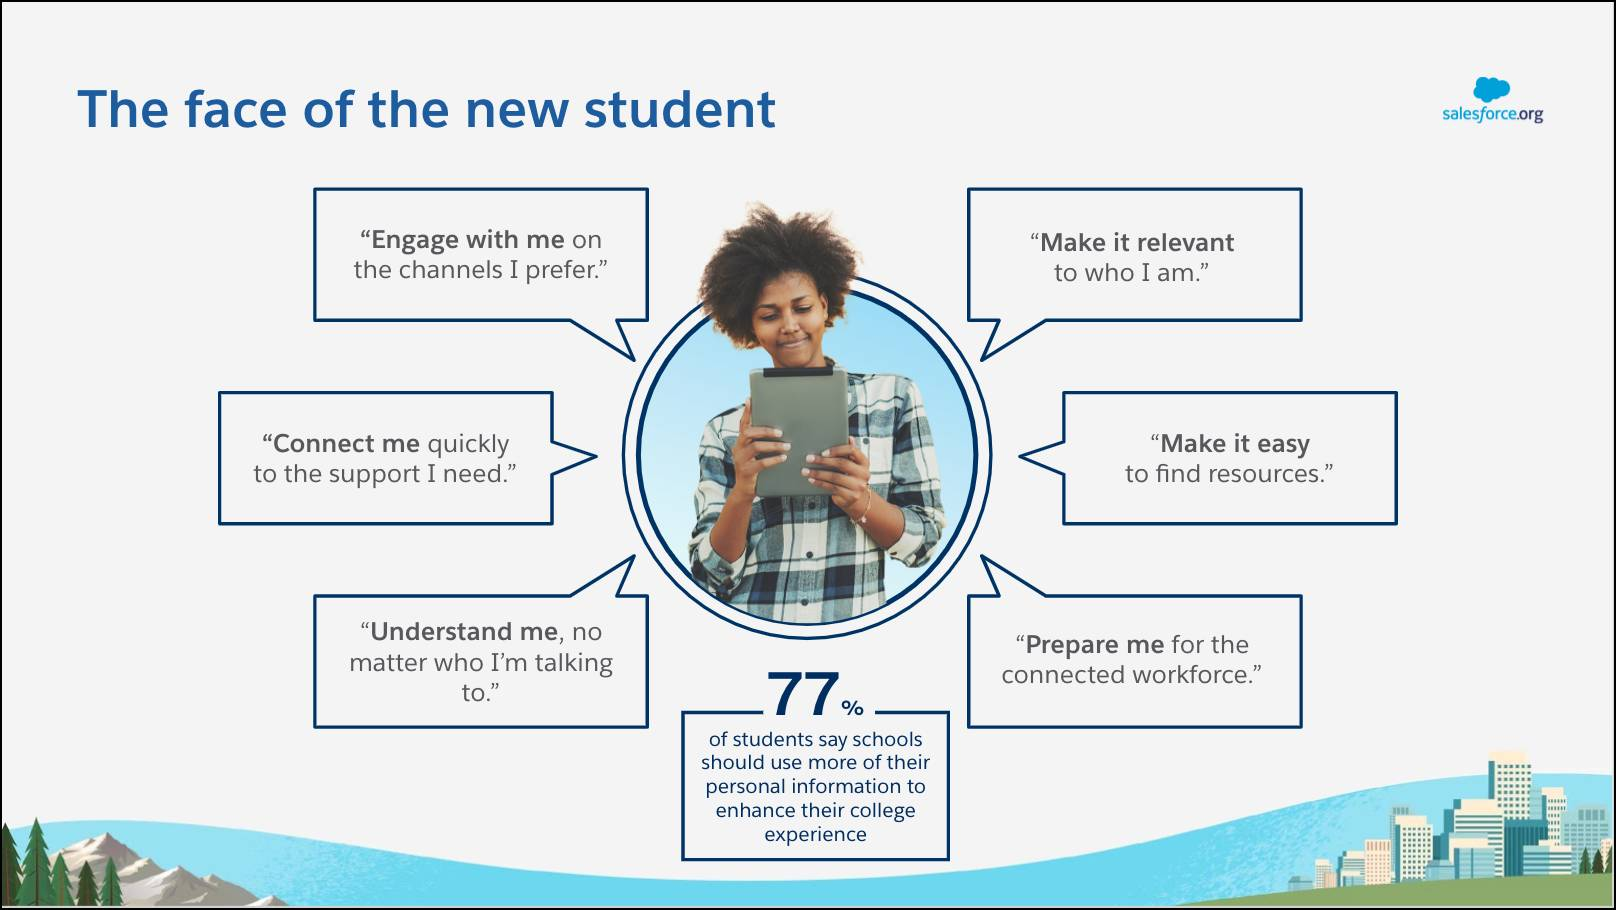 "The face of the new student features a student that voices the following needs: ""Engage with me on the channels I prefer"", ""Make it relevant to who I am"", ""Make it easy to find resources"", ""Prepare me for the connected workforce"", ""Understand me, no matter who I'm talking to"", Connect me quickly to the support I need"". 77% of students say schools should use more of their personal information to enhance their college experience."